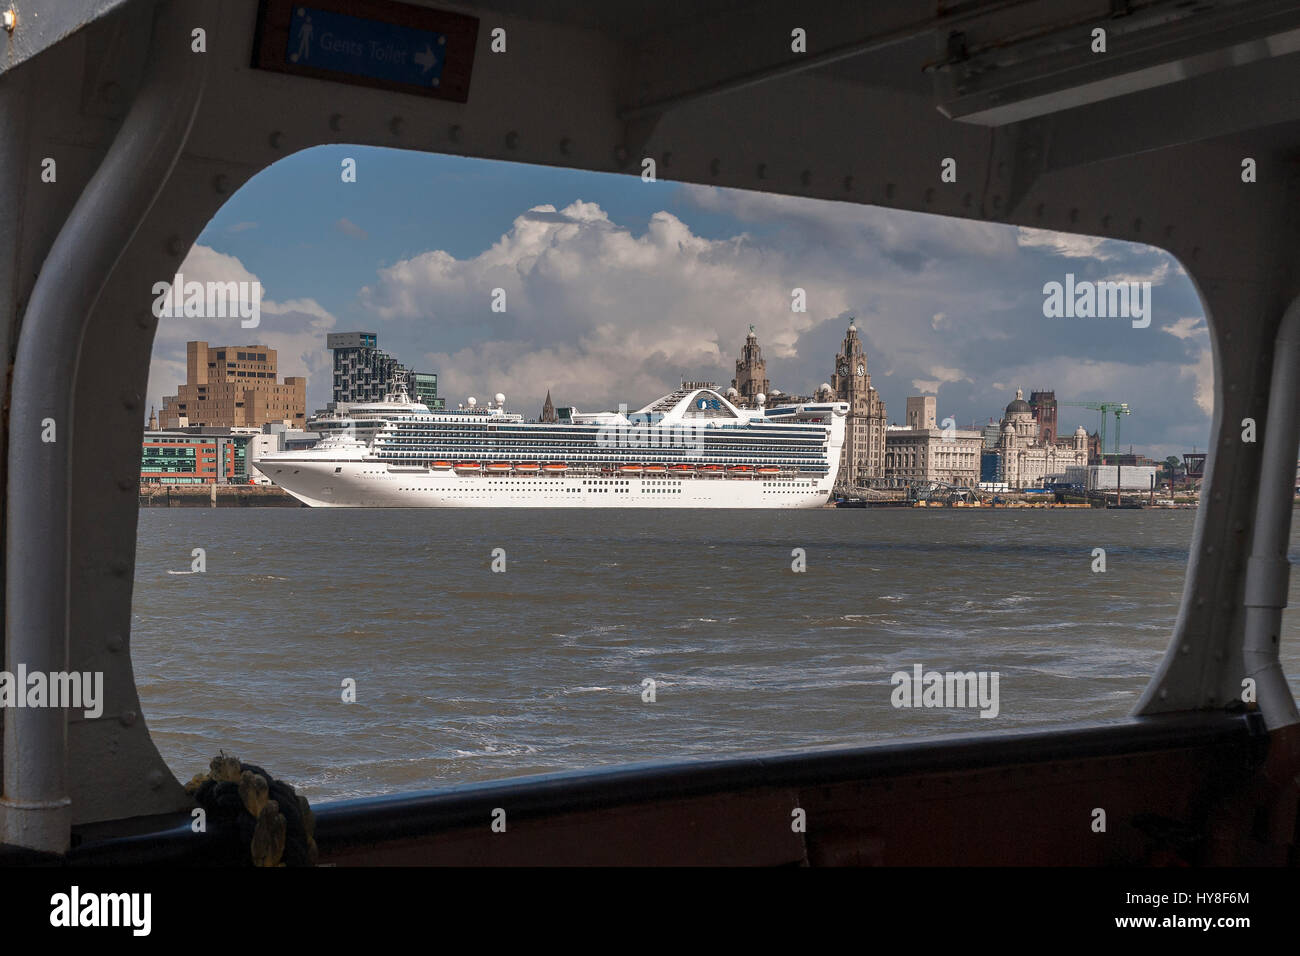 The cruise line Grand Princess seen from a Mersey ferry in Liverpool berthed at the pierhead. - Stock Image